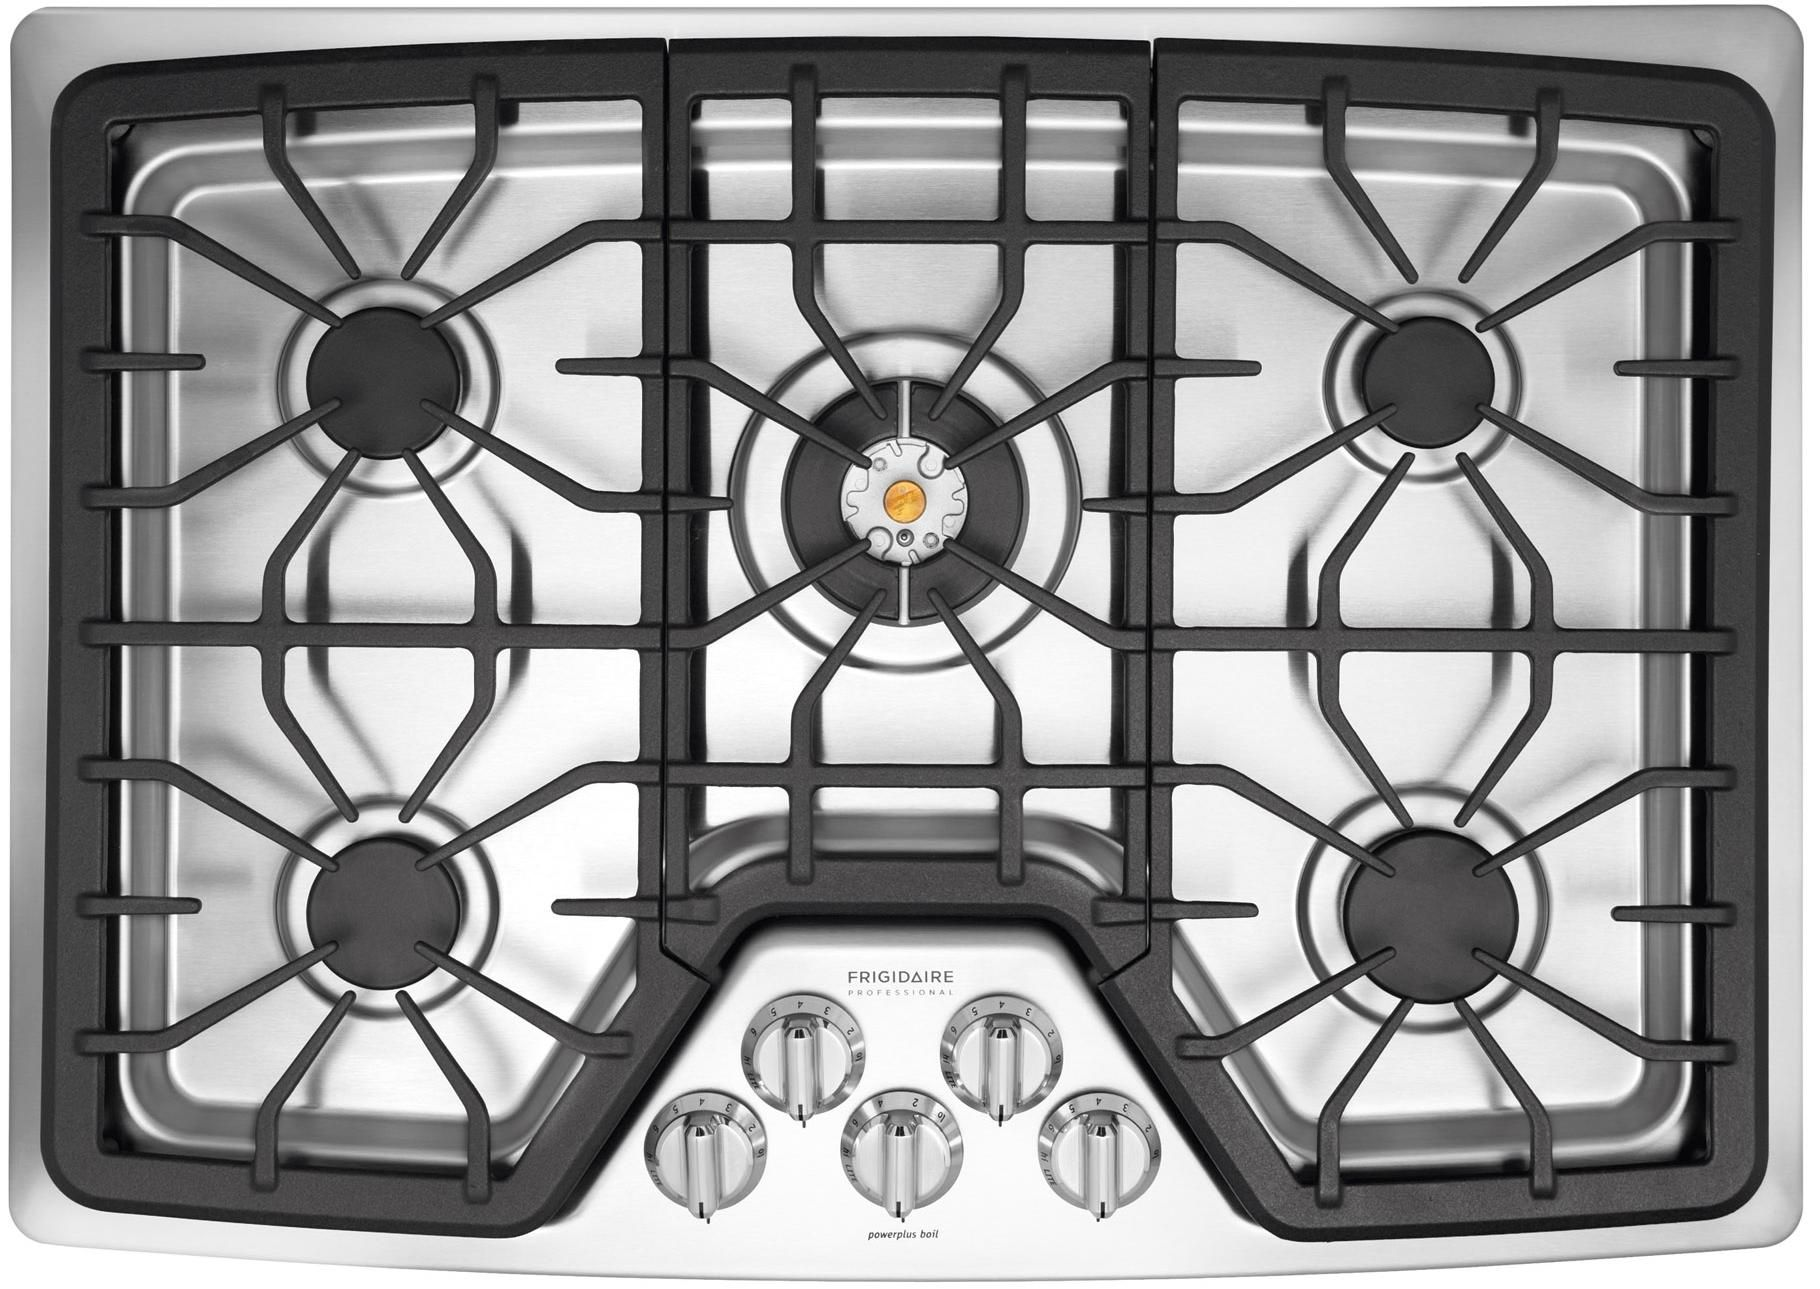 Gas Cooktop 30 Gas cooktop